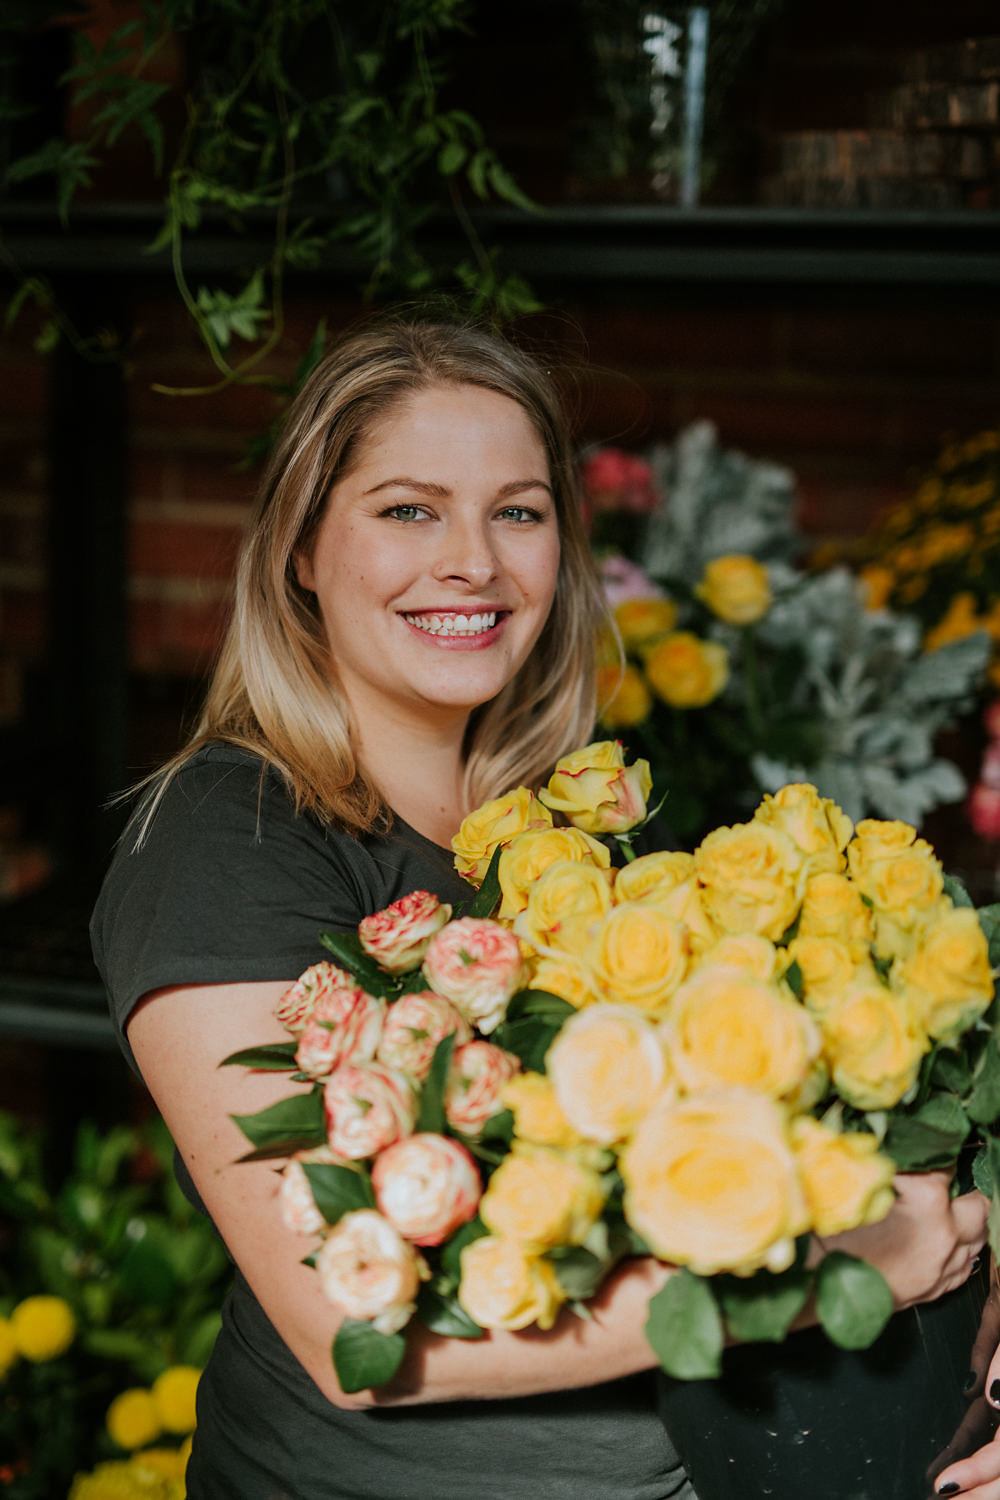 gillian pollard wedding stylist florist melbourne yarra valley